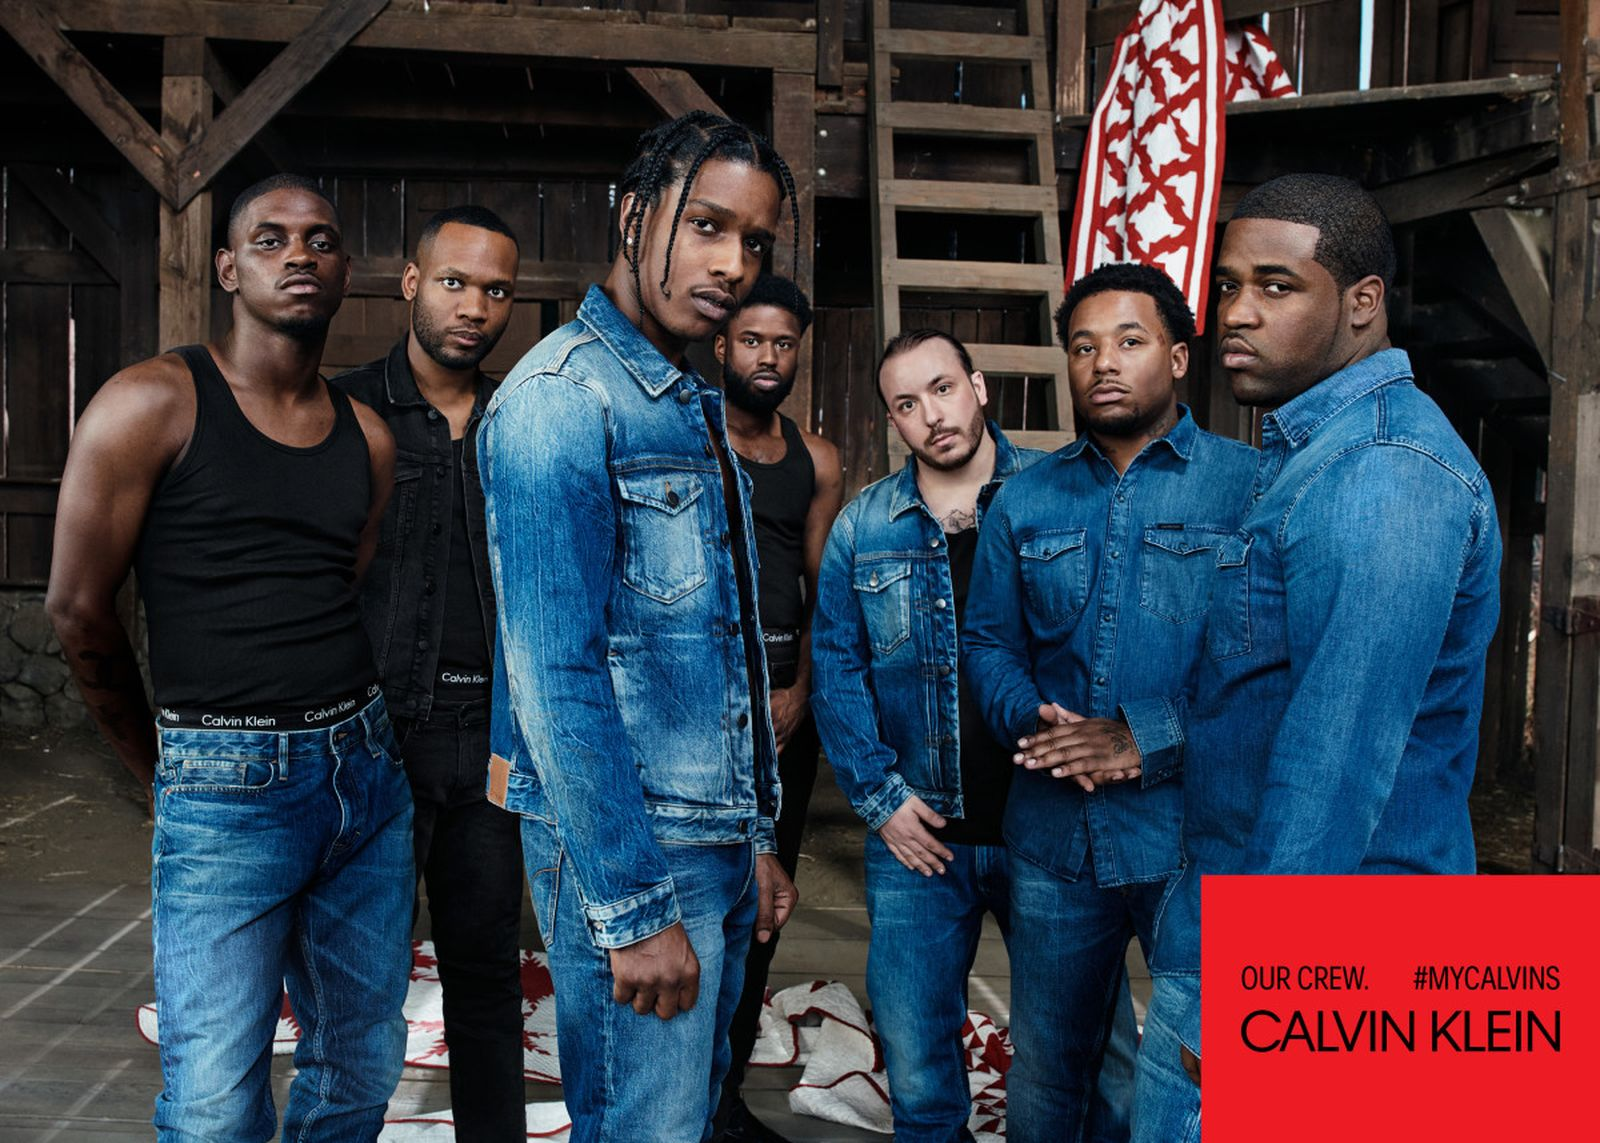 calvin klein underwearjeans mycalvins adv campaign asap mob ph willy va Raf Simons calvin klein 205w39nyc pvh corp